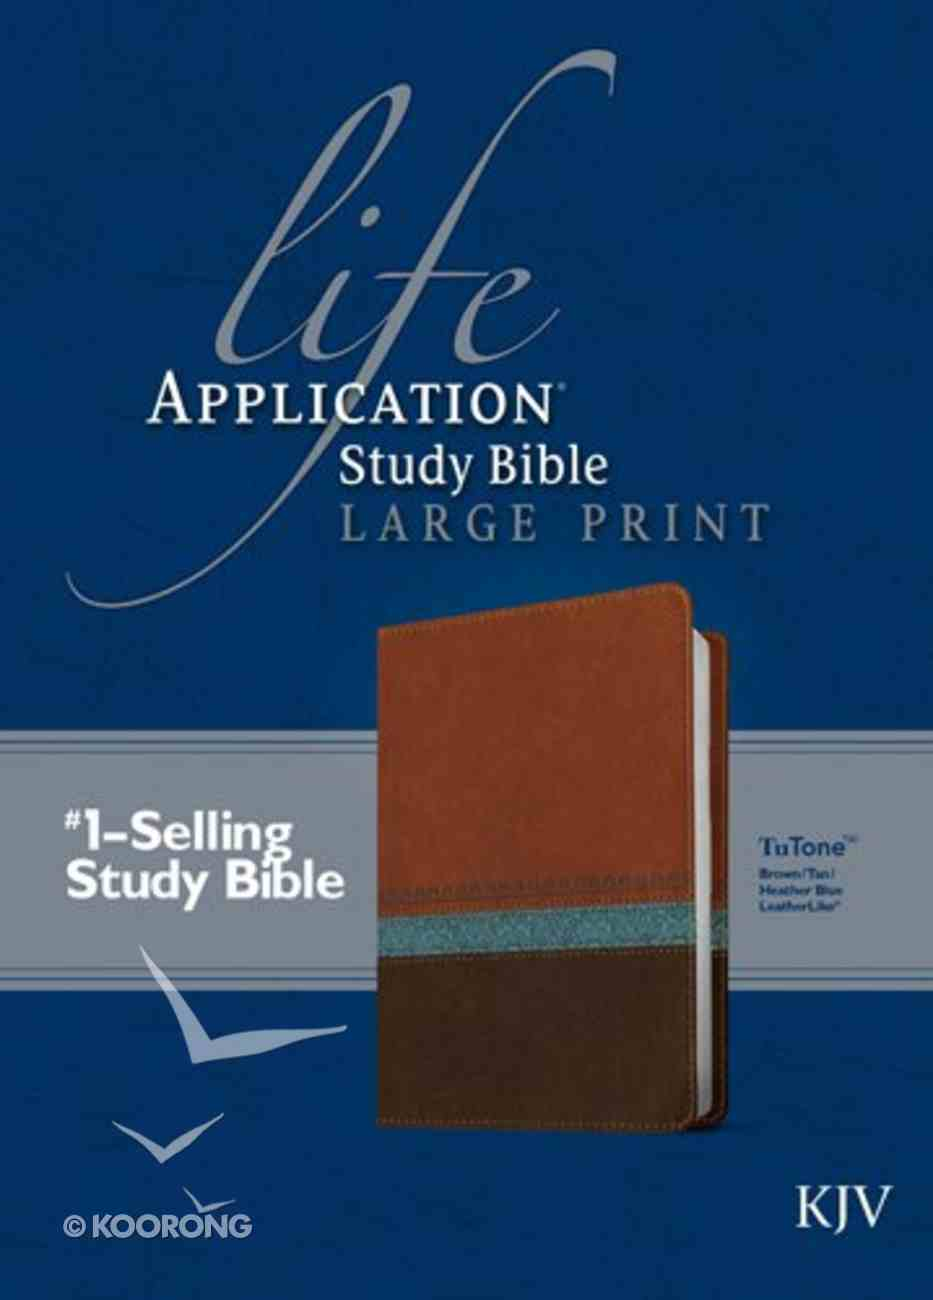 KJV Life Application Study Bible Large Print Brown/Tan/Heather Blue (Red Letter Edition) Imitation Leather